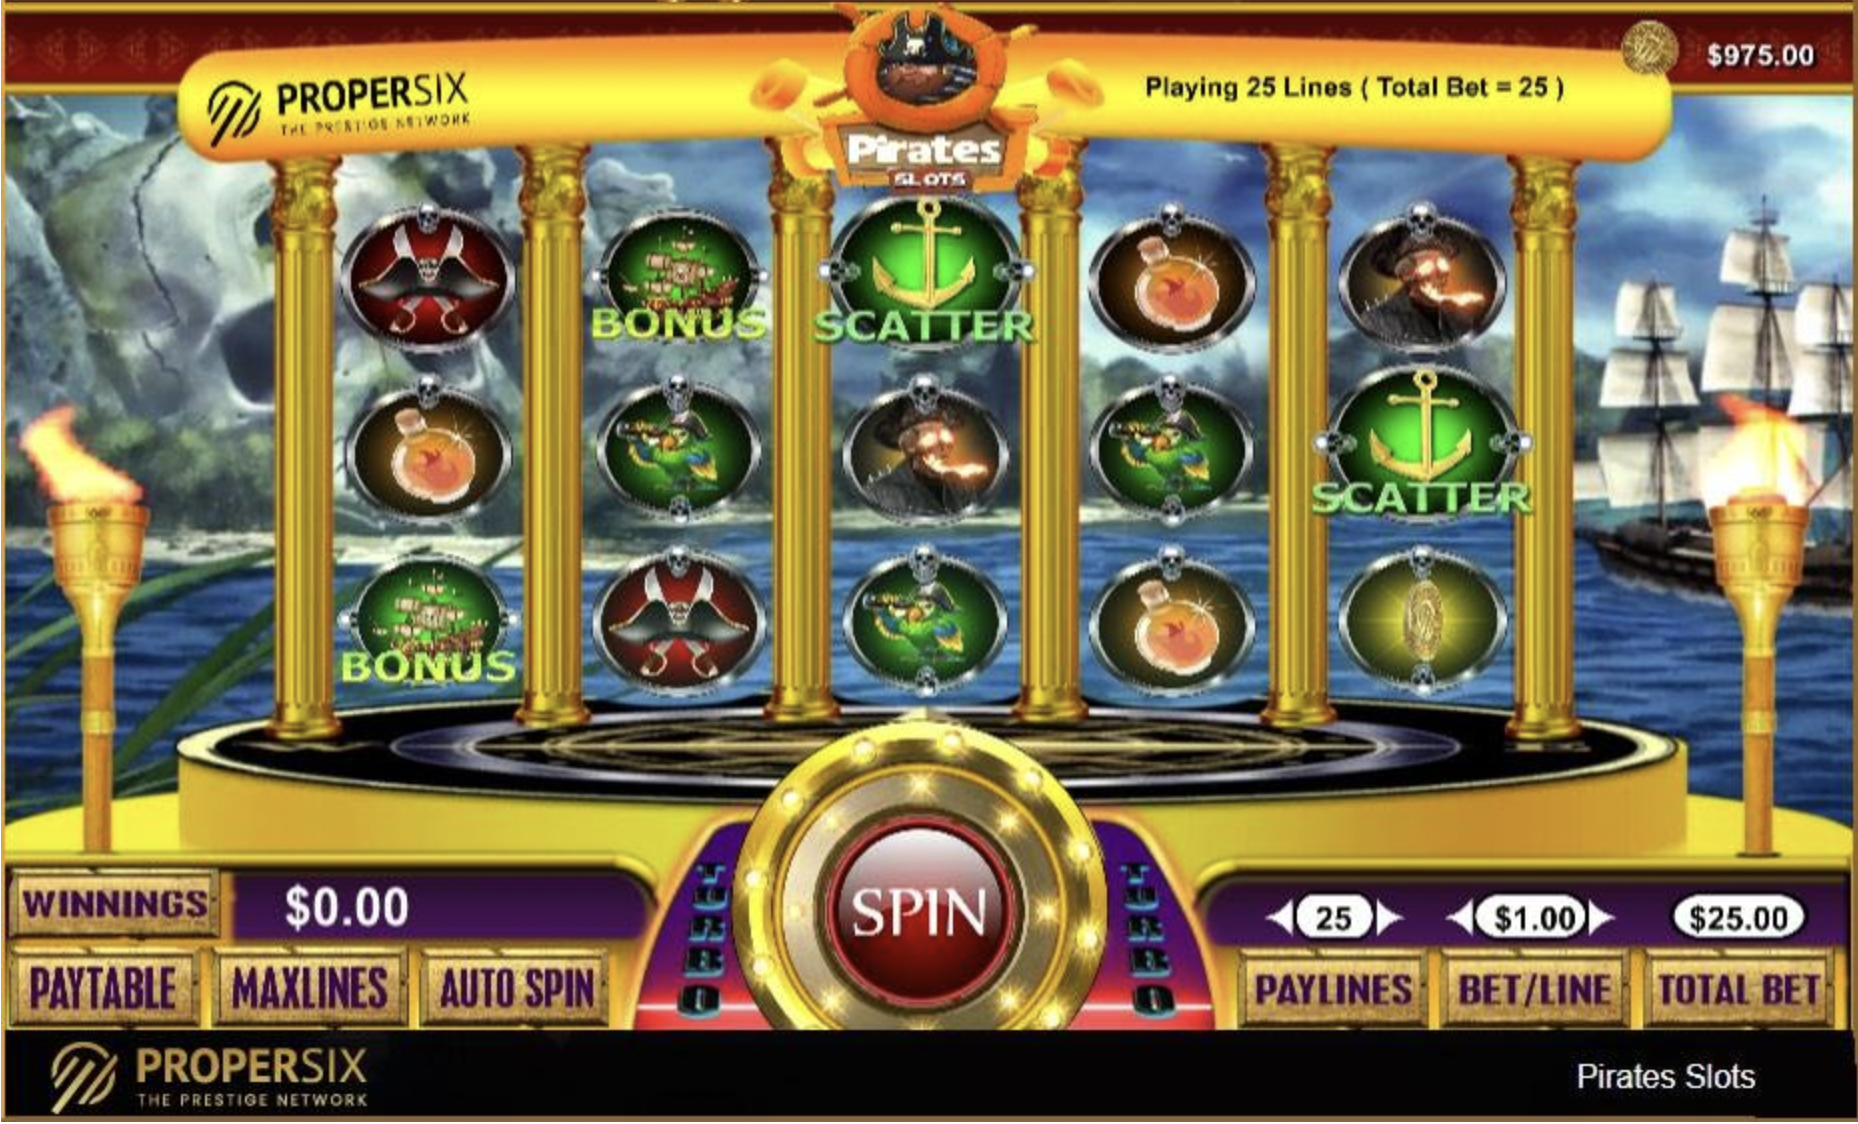 How to Play Live Casino Games